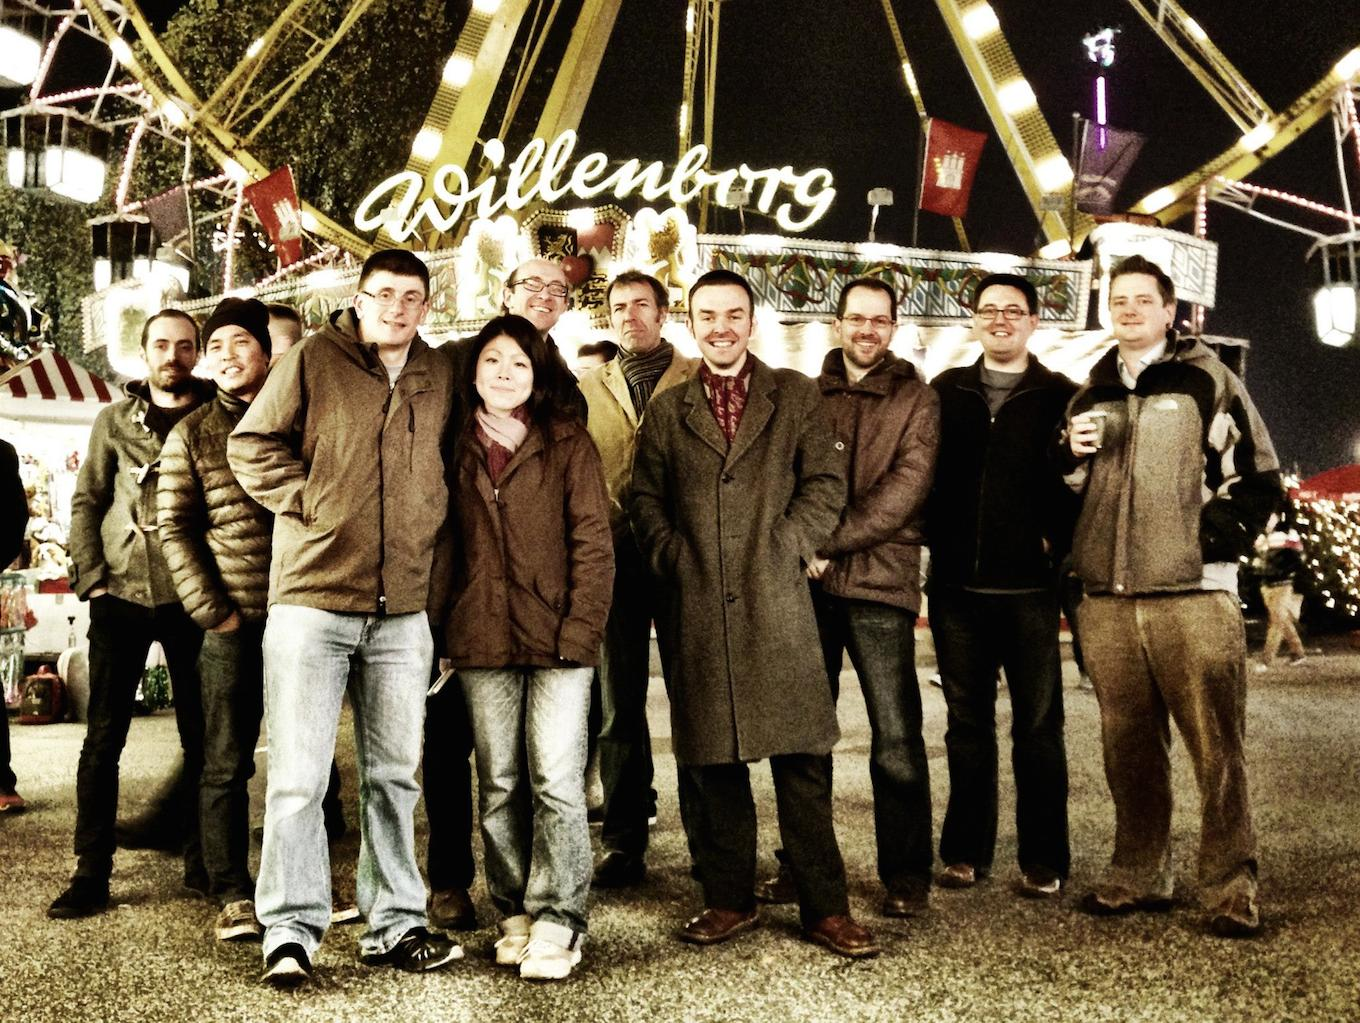 The Steinberg notation team during its first trip to Hamburg in November 2012 (Courtesy Daniel Spreadbury; photo by Anthony Hughes)